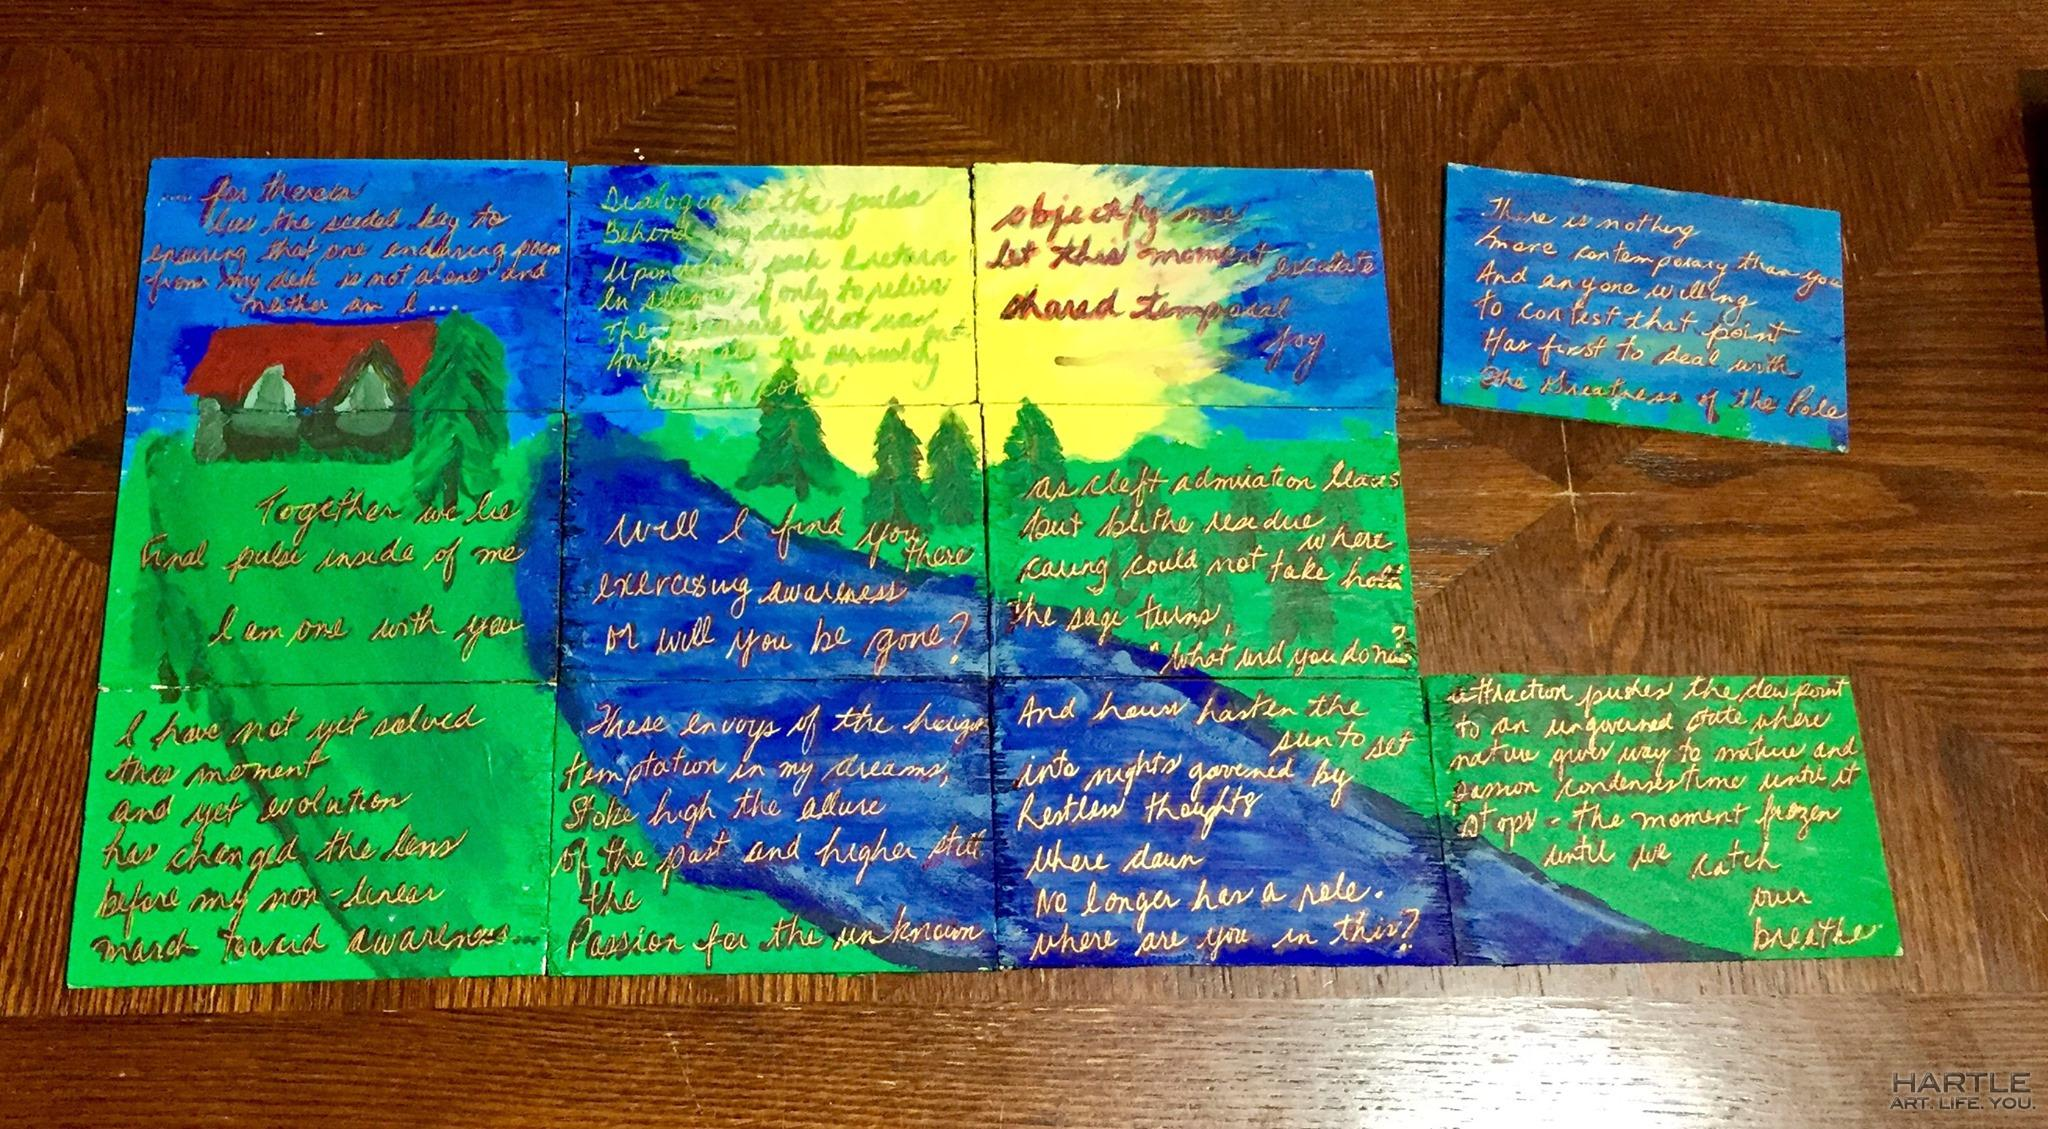 For many weeks now, I've been receiving anonymous wooden post cards in the mail. Each has part of one of my poems written on it and collectively – it is a painting of my home. There's one missing but the image, message and origin are known – Thank you anonymous xo